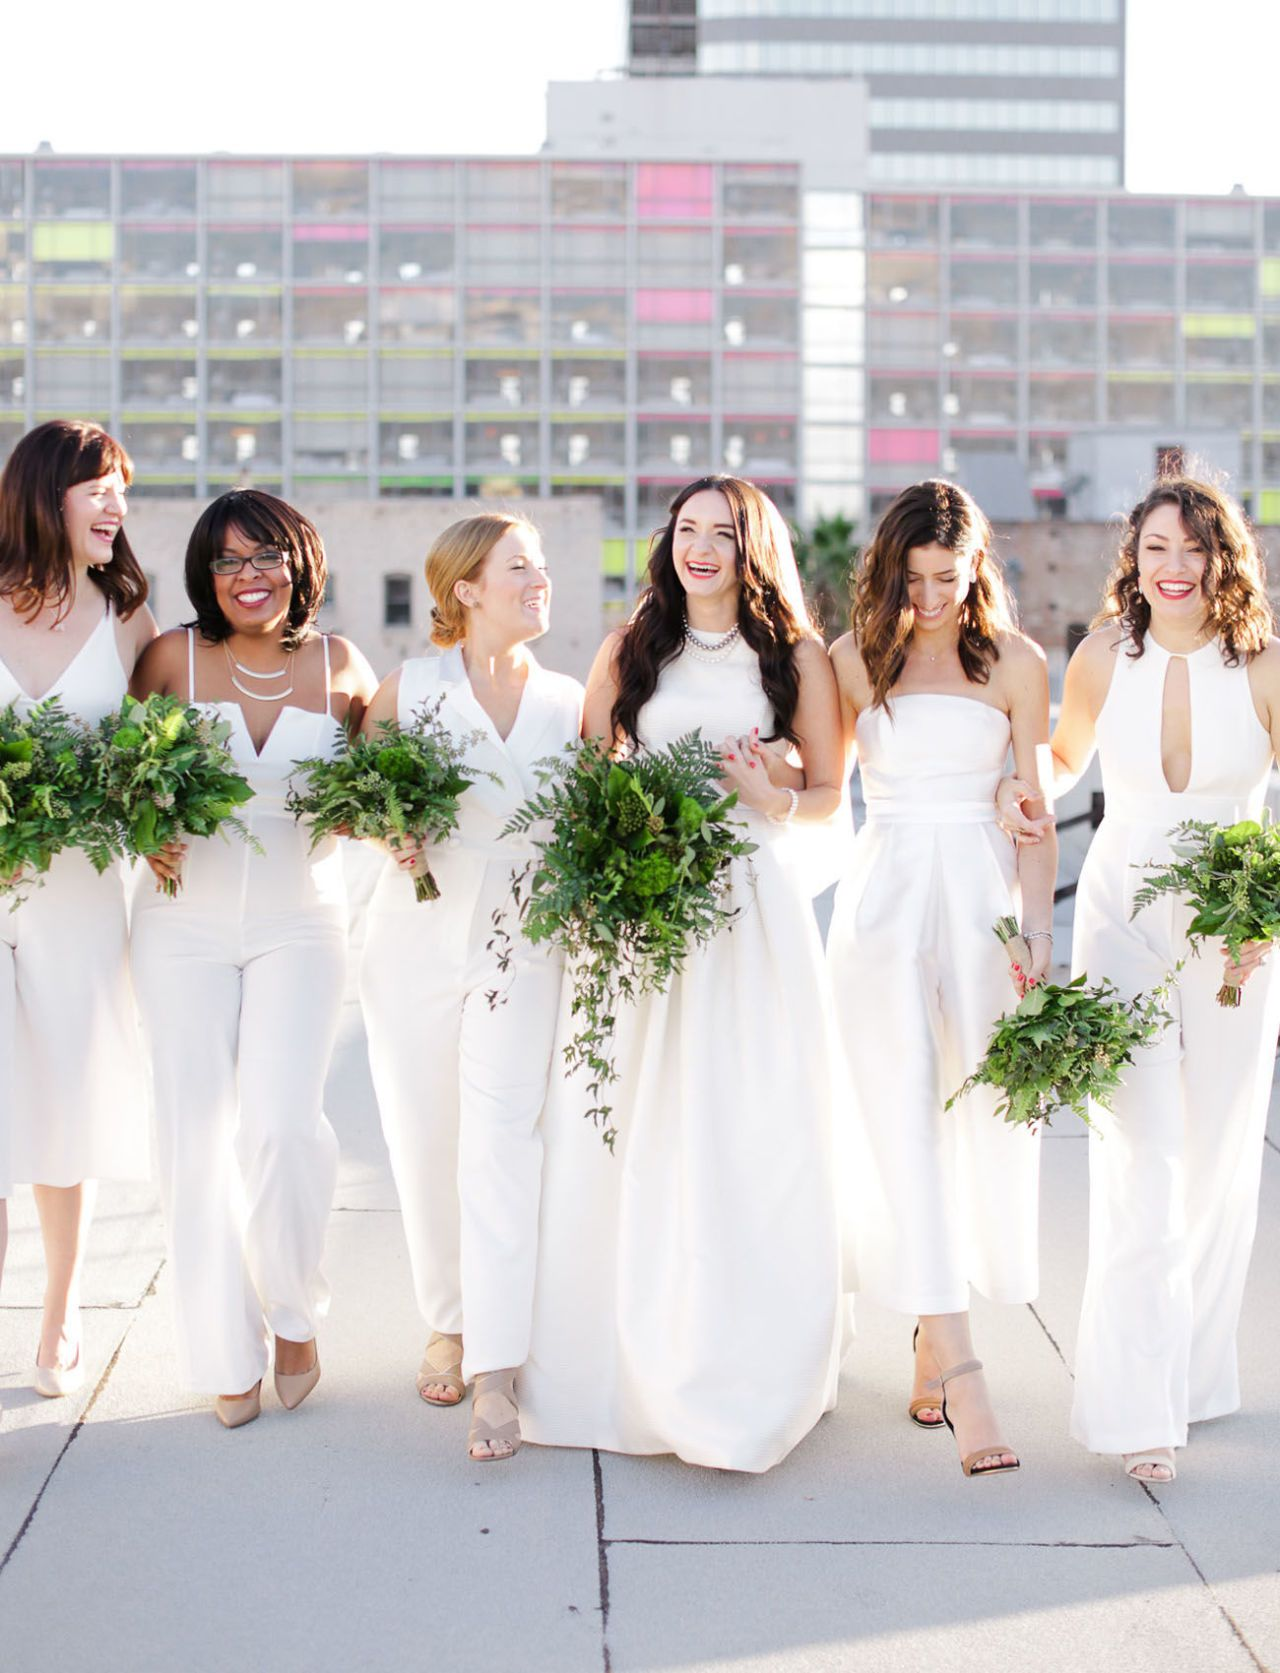 13 unique bridesmaid dress ideas for ballsy brides unique 13 unique bridesmaid dress ideas for ballsy brides ombrellifo Choice Image